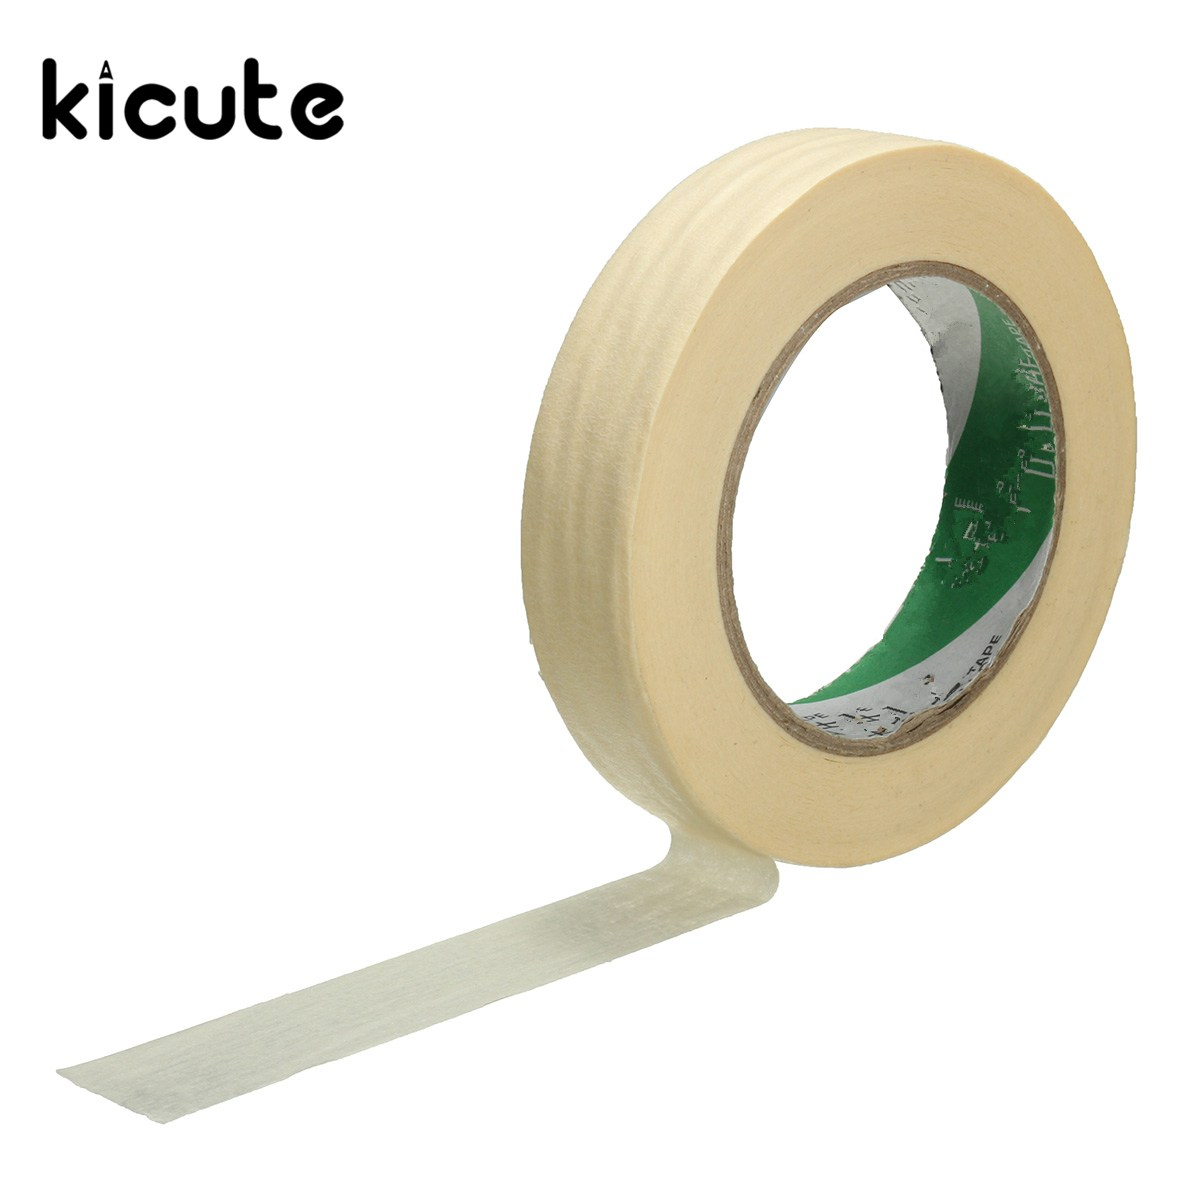 Kicute Portable 25mm*50m Roll Beige Masking Tape Printing Printer Decorative Adhesive Sticker For Home Office Art Tools 9 2016 new 3d color printer dual kit for sale 3dprinter electronics with one roll filament masking tape 2gb sd card for free